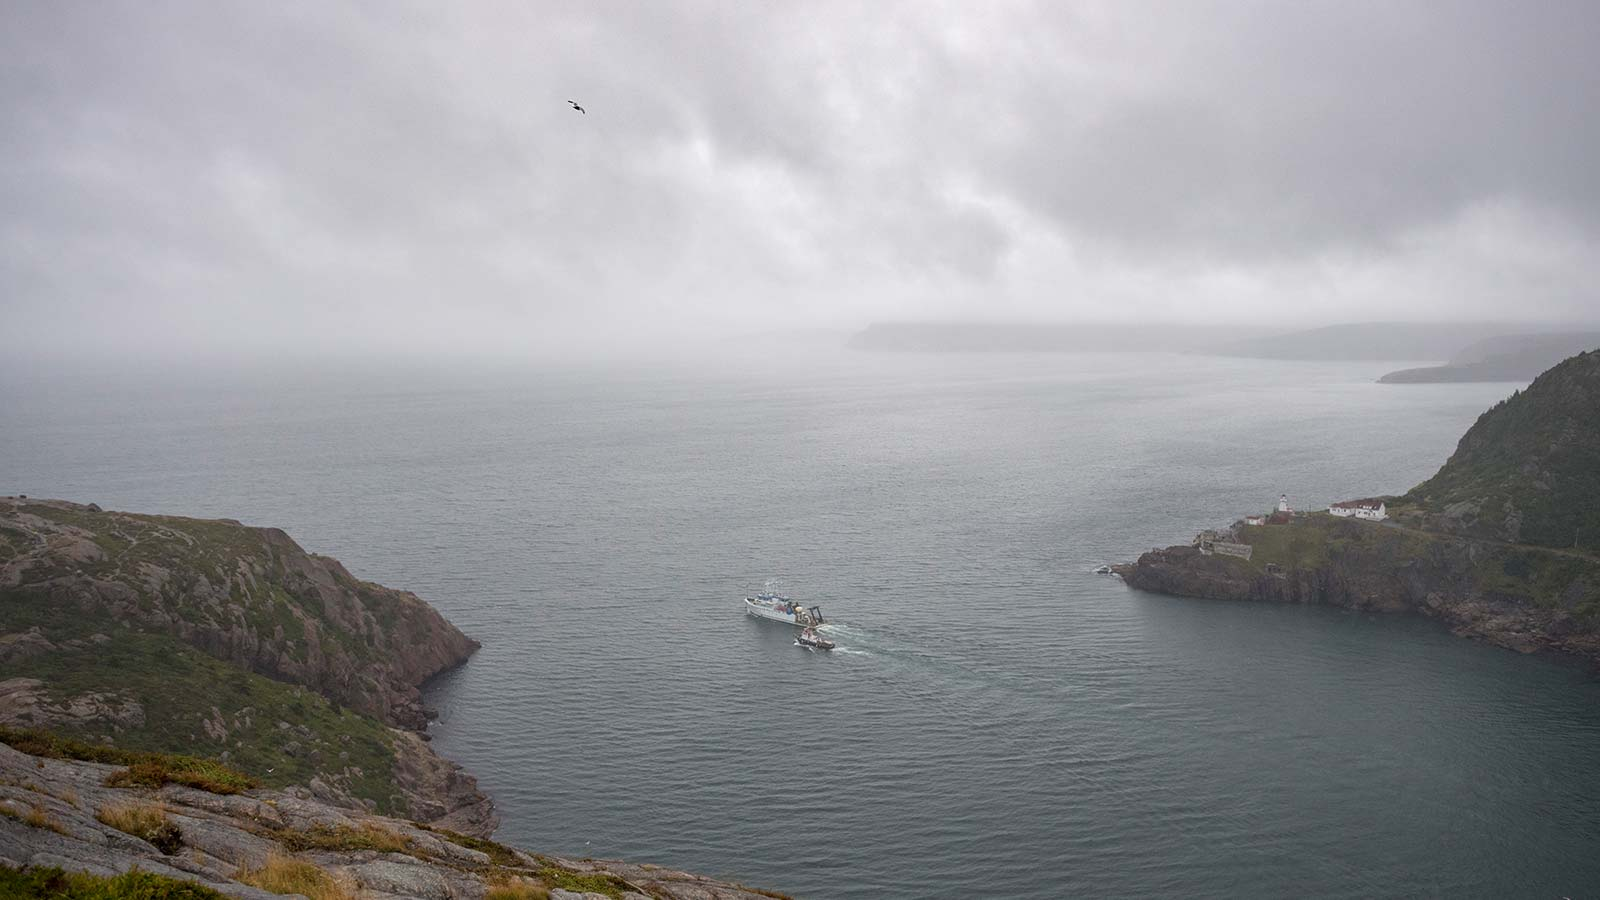 Fog moves in as the research vessel Hugh R. Sharp departs St. John's Harbor in Newfoundland, Canada. The ship carried dozens of meteorological instruments gathering data in coordination with the land-based instruments, as well as a half dozen scientists from different universities and agencies for the C-FOG Project.